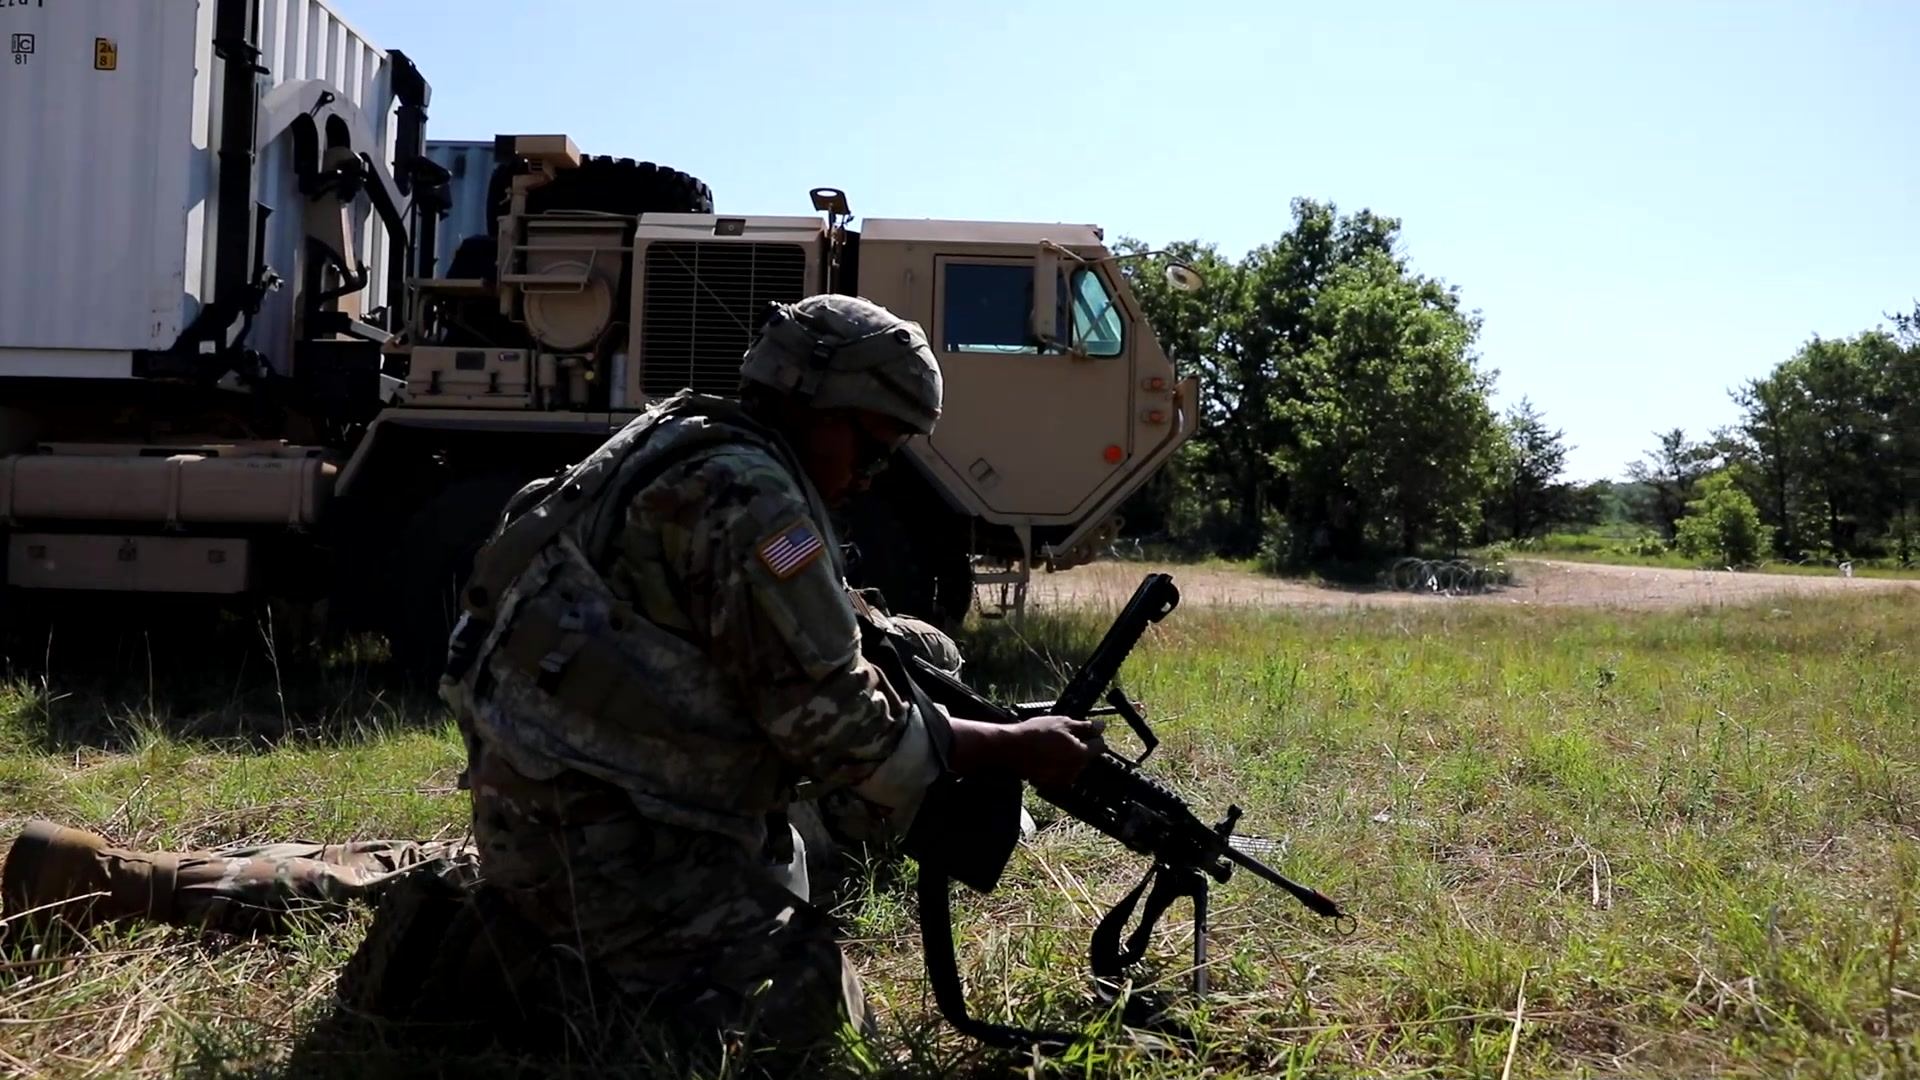 Interview with Staff Sgt. Michael Romero of the 728th Transportation Company featuring footage from the 973rd Quartermaster Company and 728th Transportation Company.